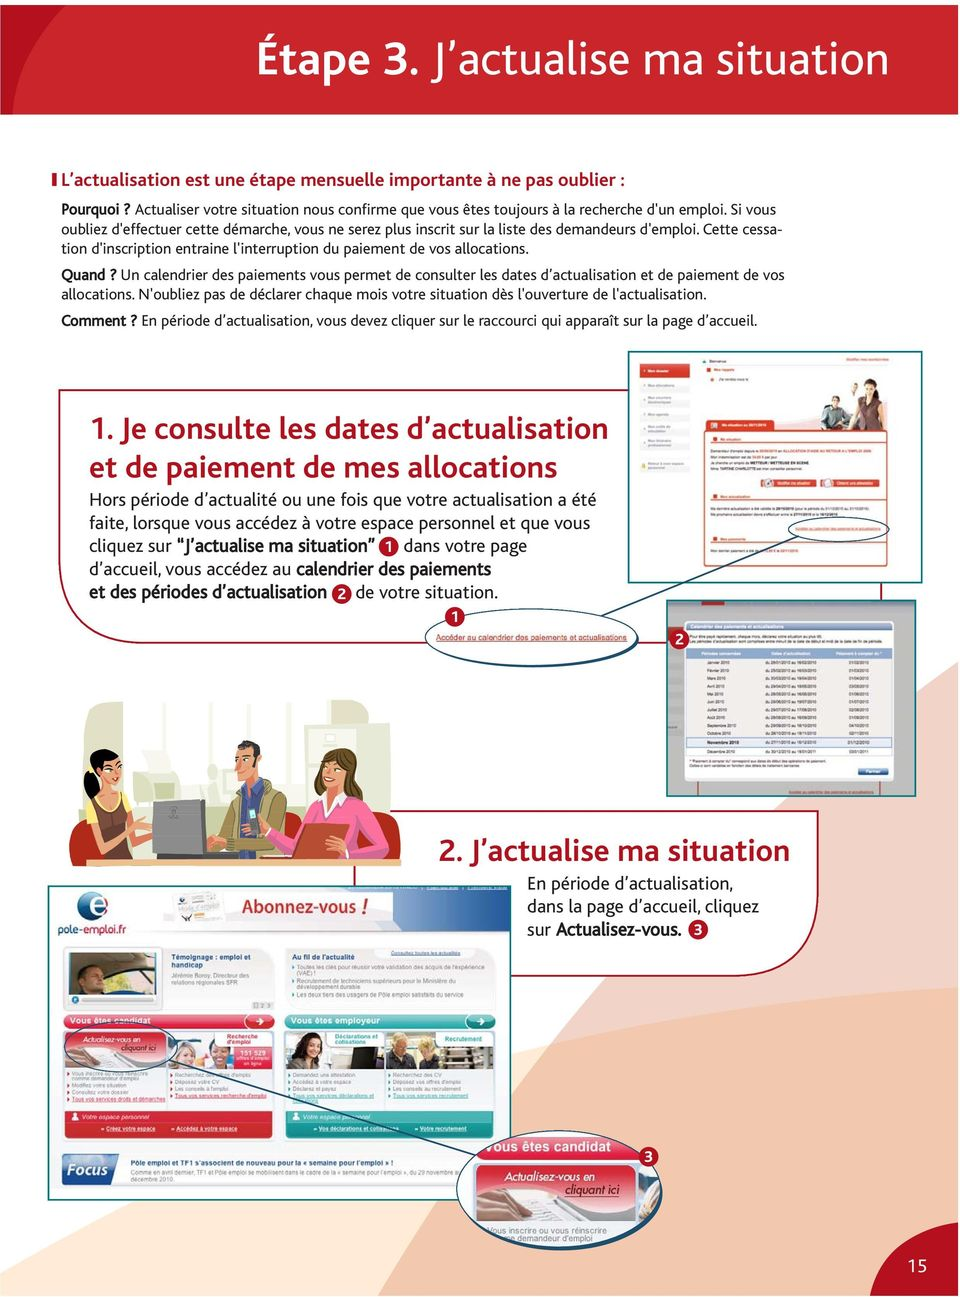 Cette cessation d'inscription entraine l'interruption du paiement de vos allocations. Quand?